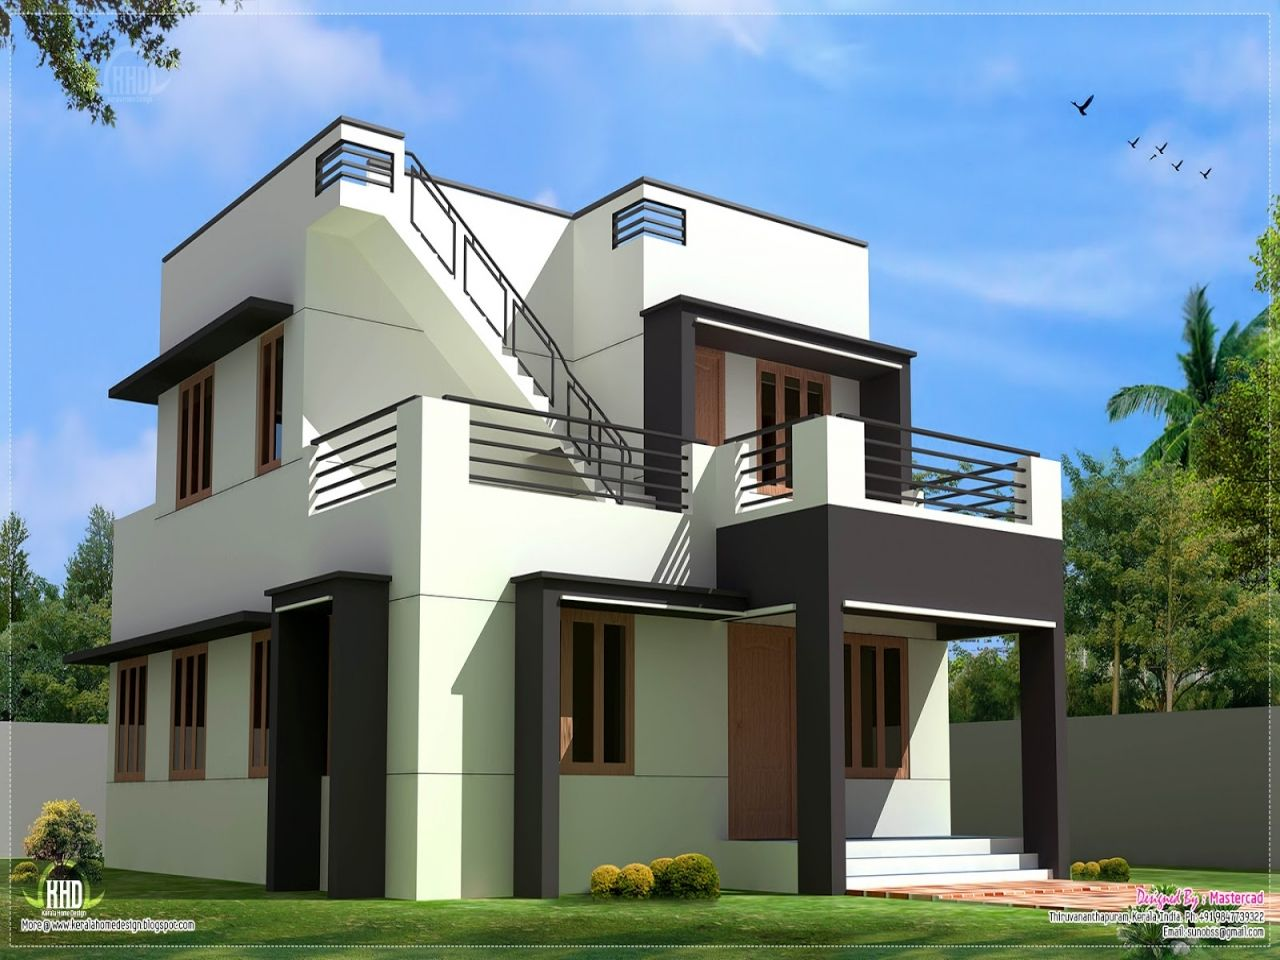 Stunning Small Lot Homes Ideas Fresh On Narrow House Plans Modern Built Lots Small House Design Philippines Modern Small House Design Small Modern House Plans